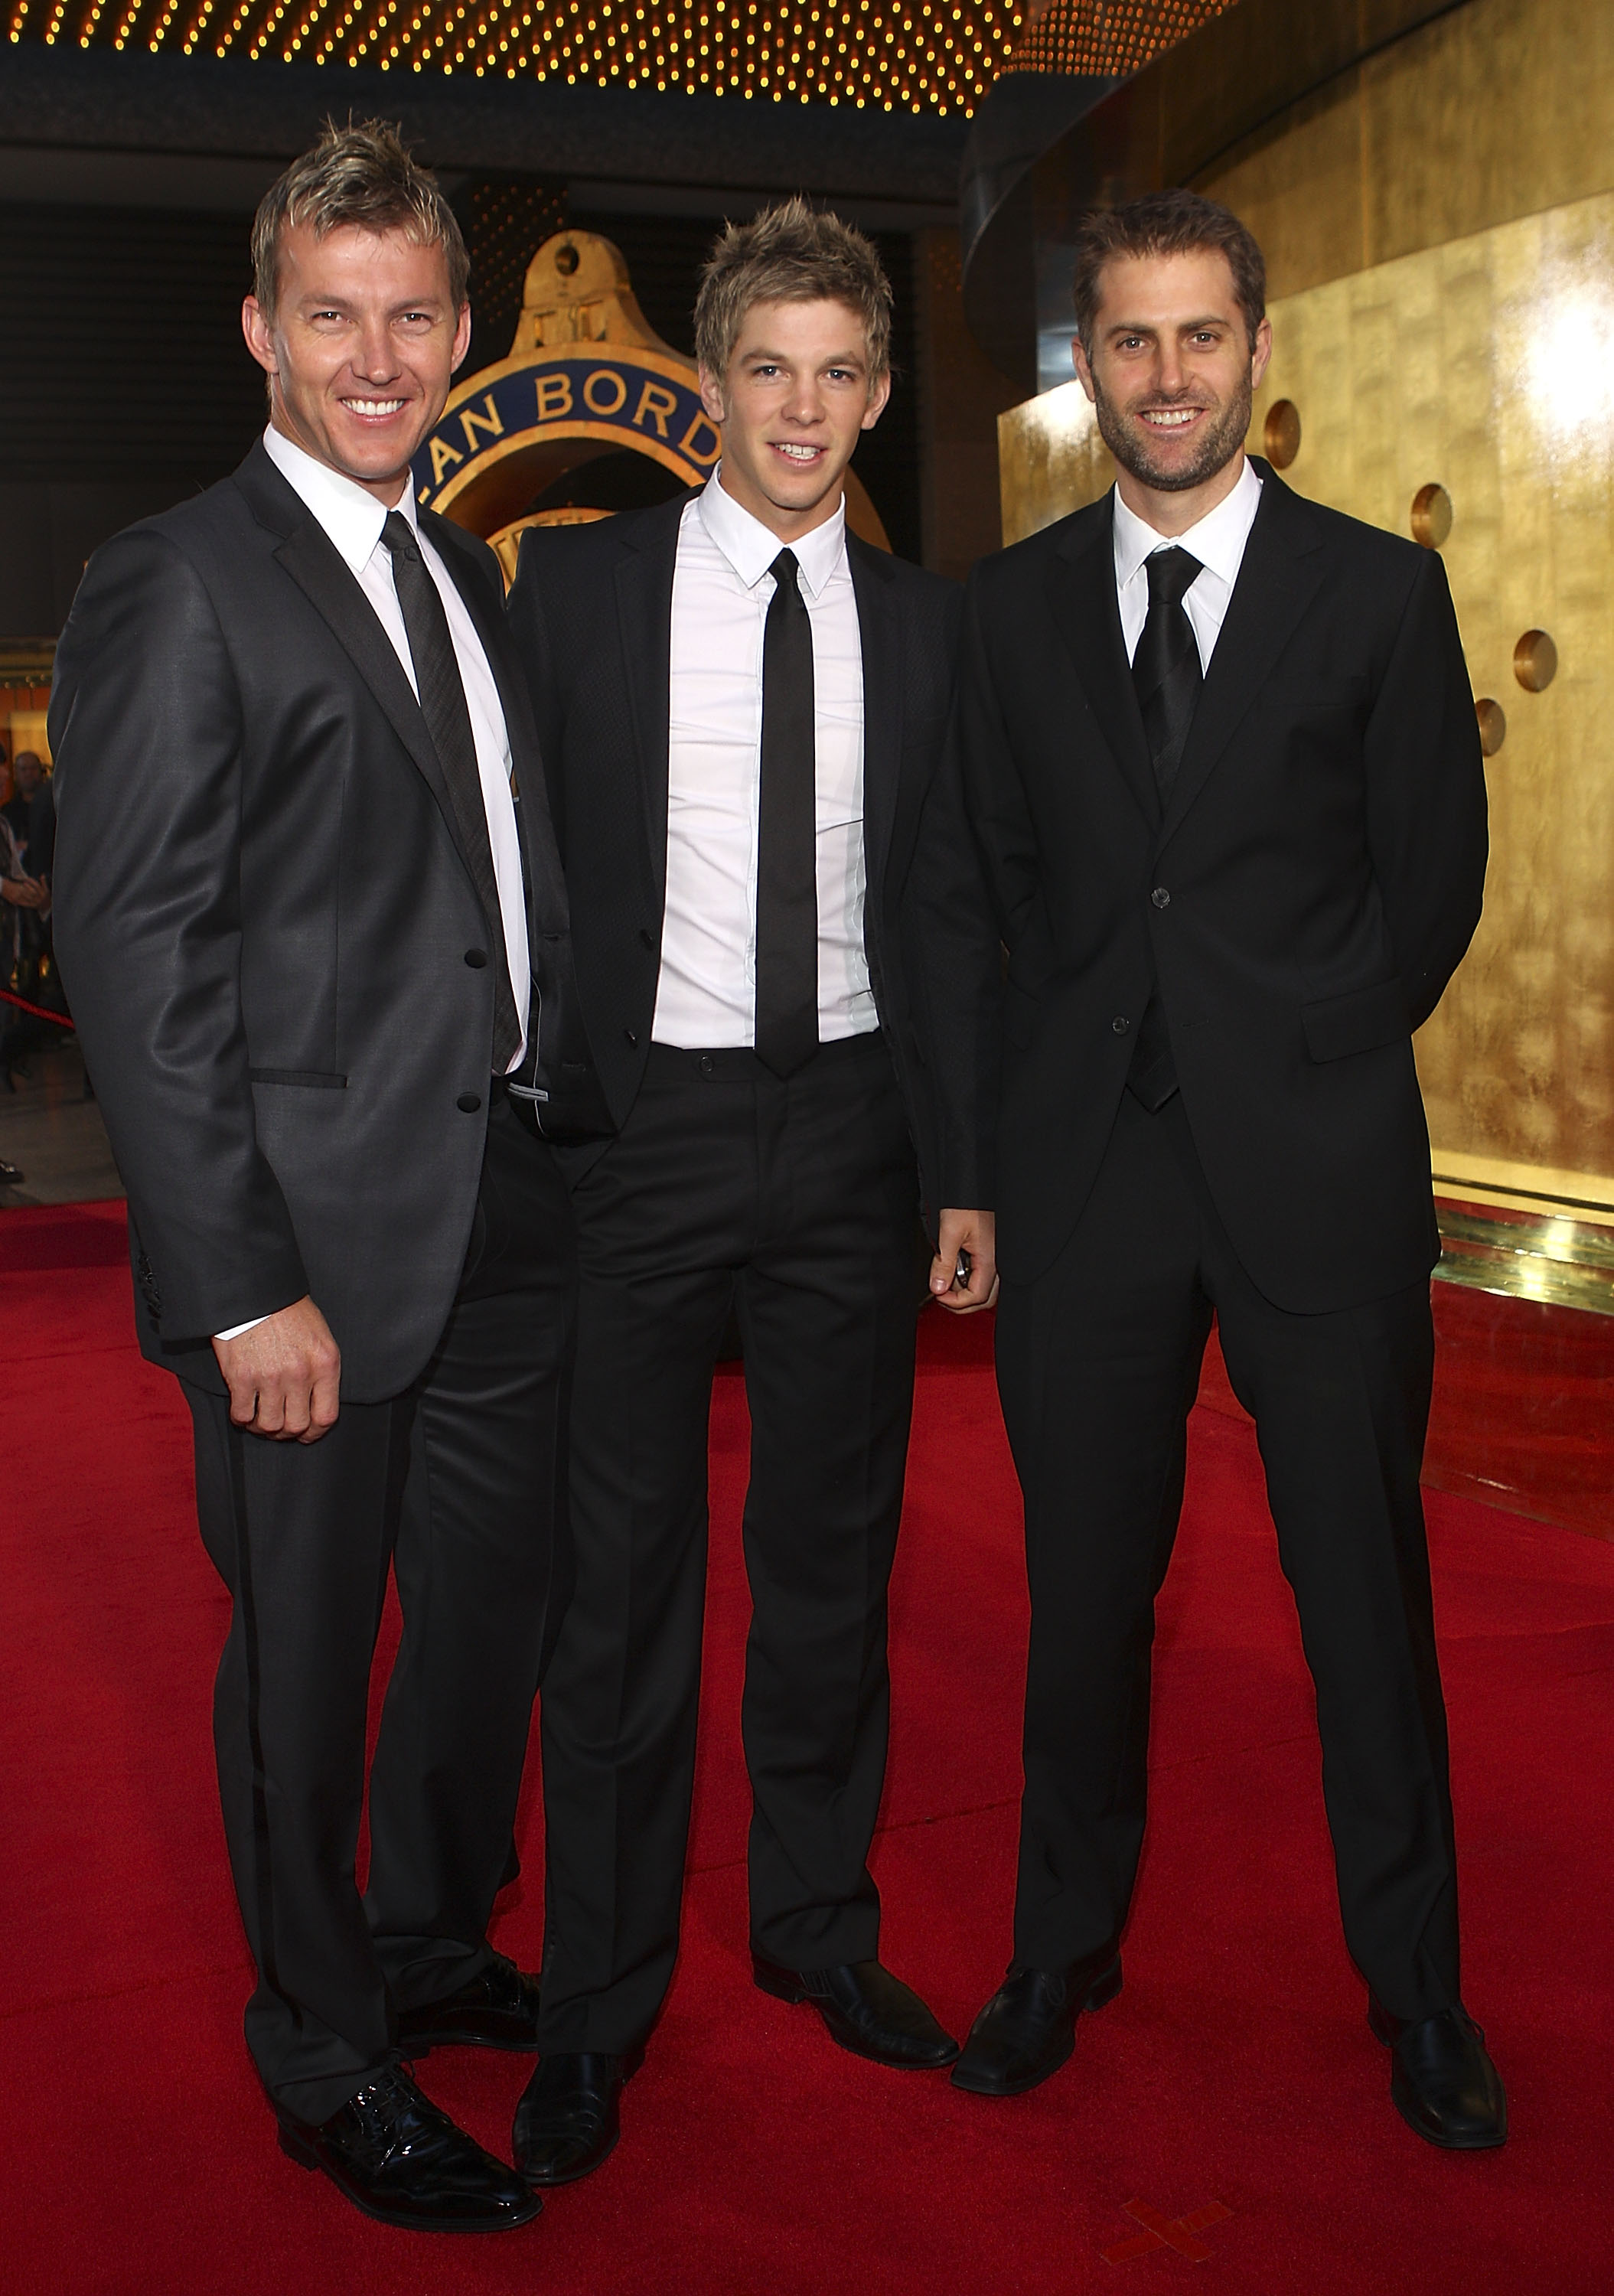 Brett Lee, Tim Paine and Simon Katich